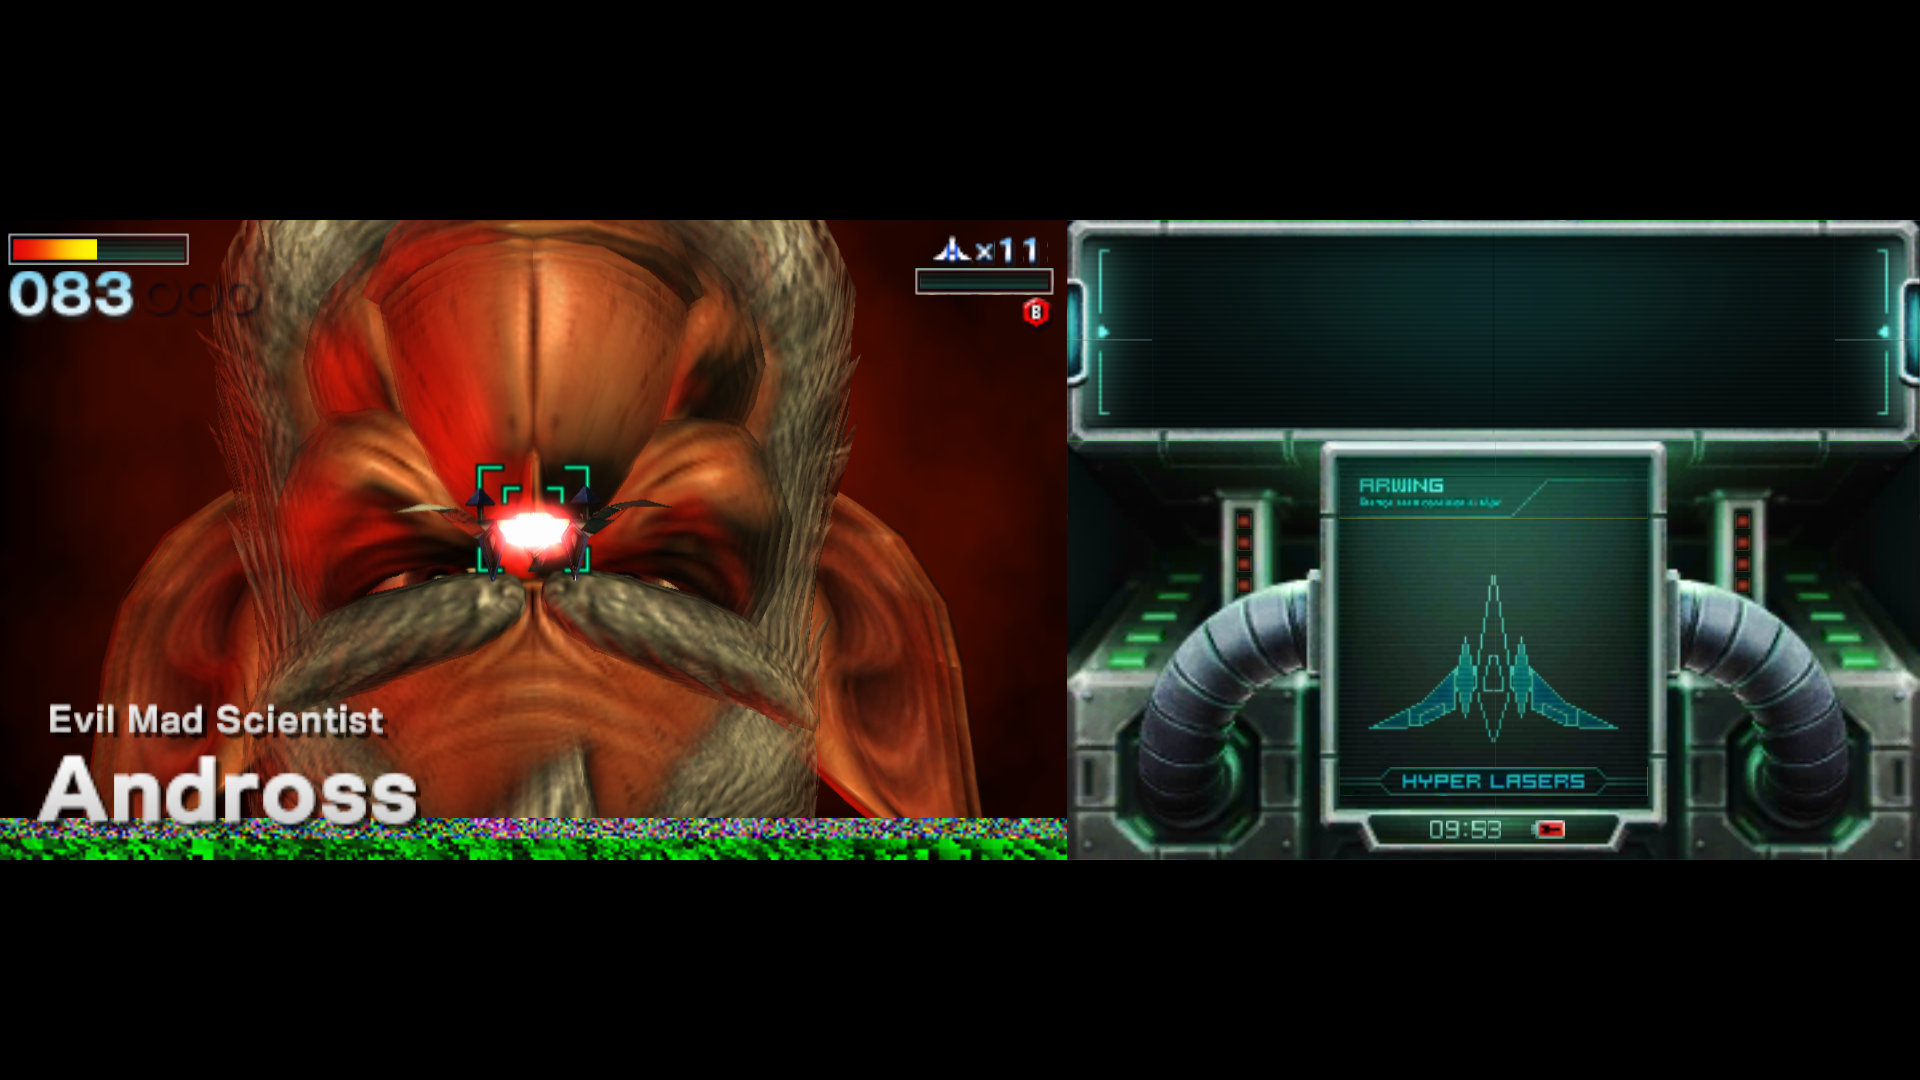 Star Fox 64 3D Aquas and Andross fight are upside down Issue 1920x1080